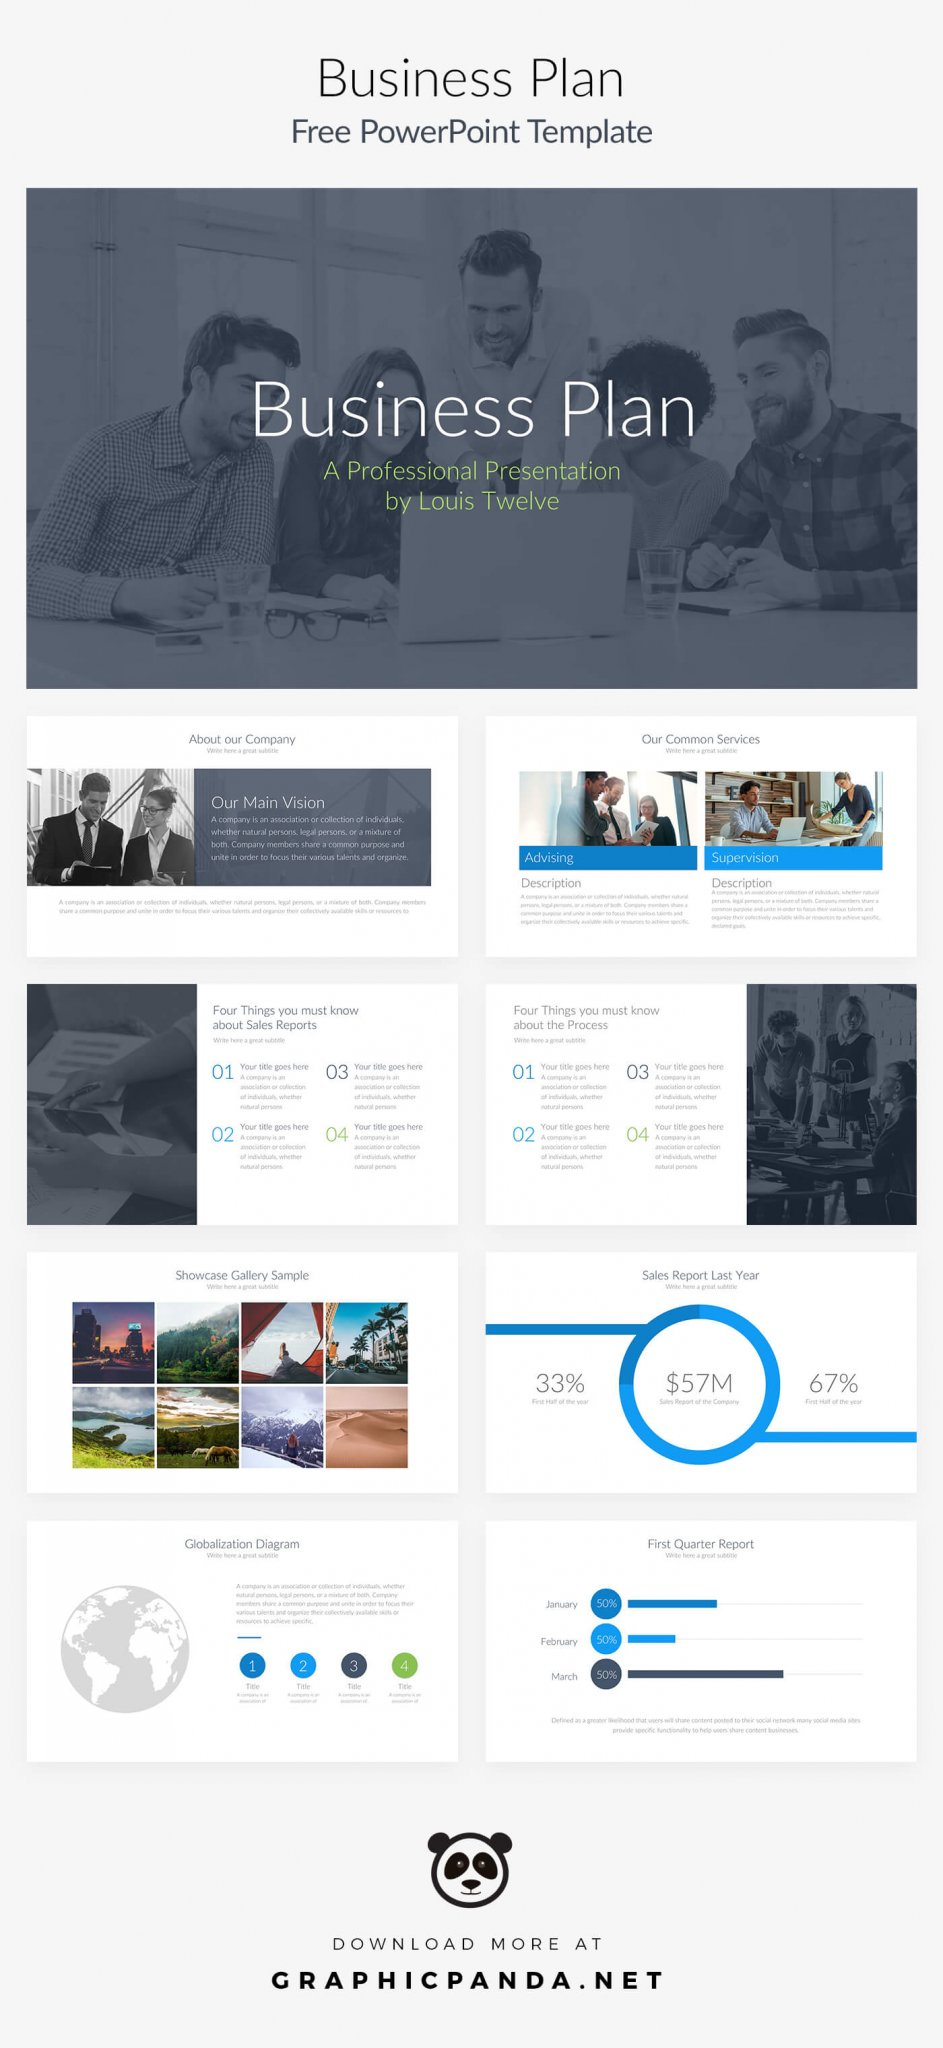 Business Plan - Free PowerPoint themes